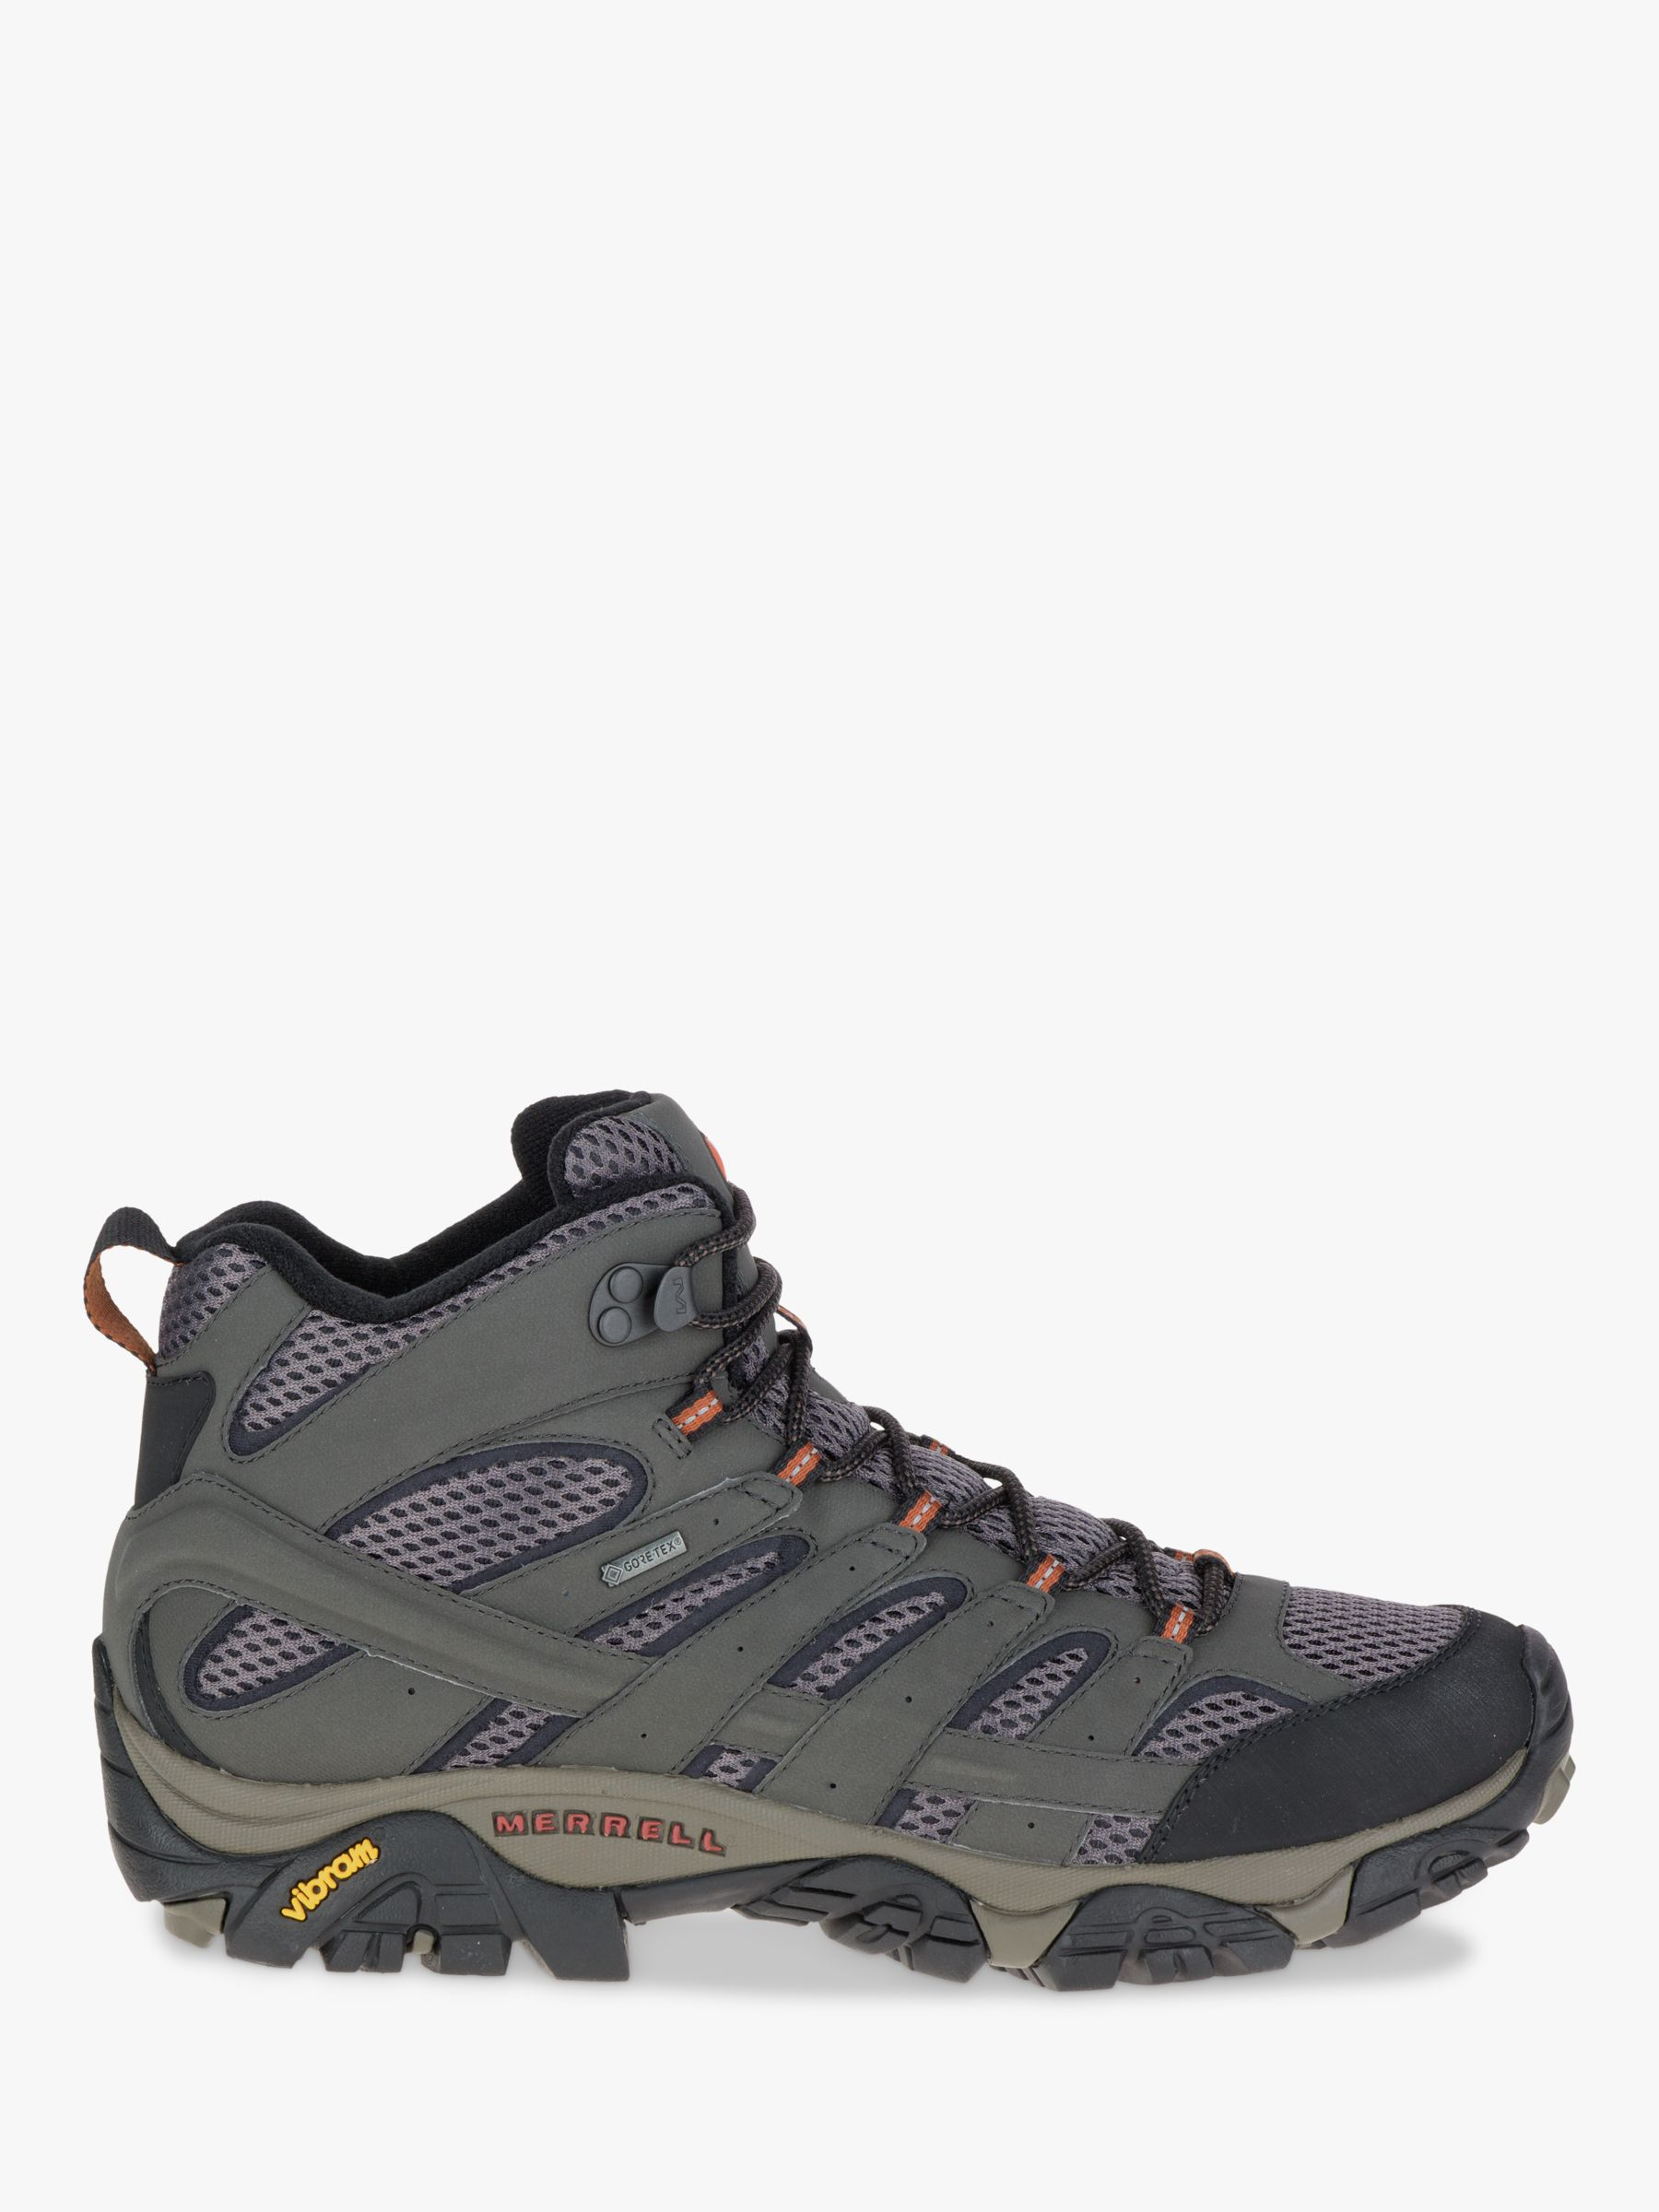 Merrell Merrell MOAB 2 Mid Men's Waterproof Gore-Tex Hiking Boots, Beluga